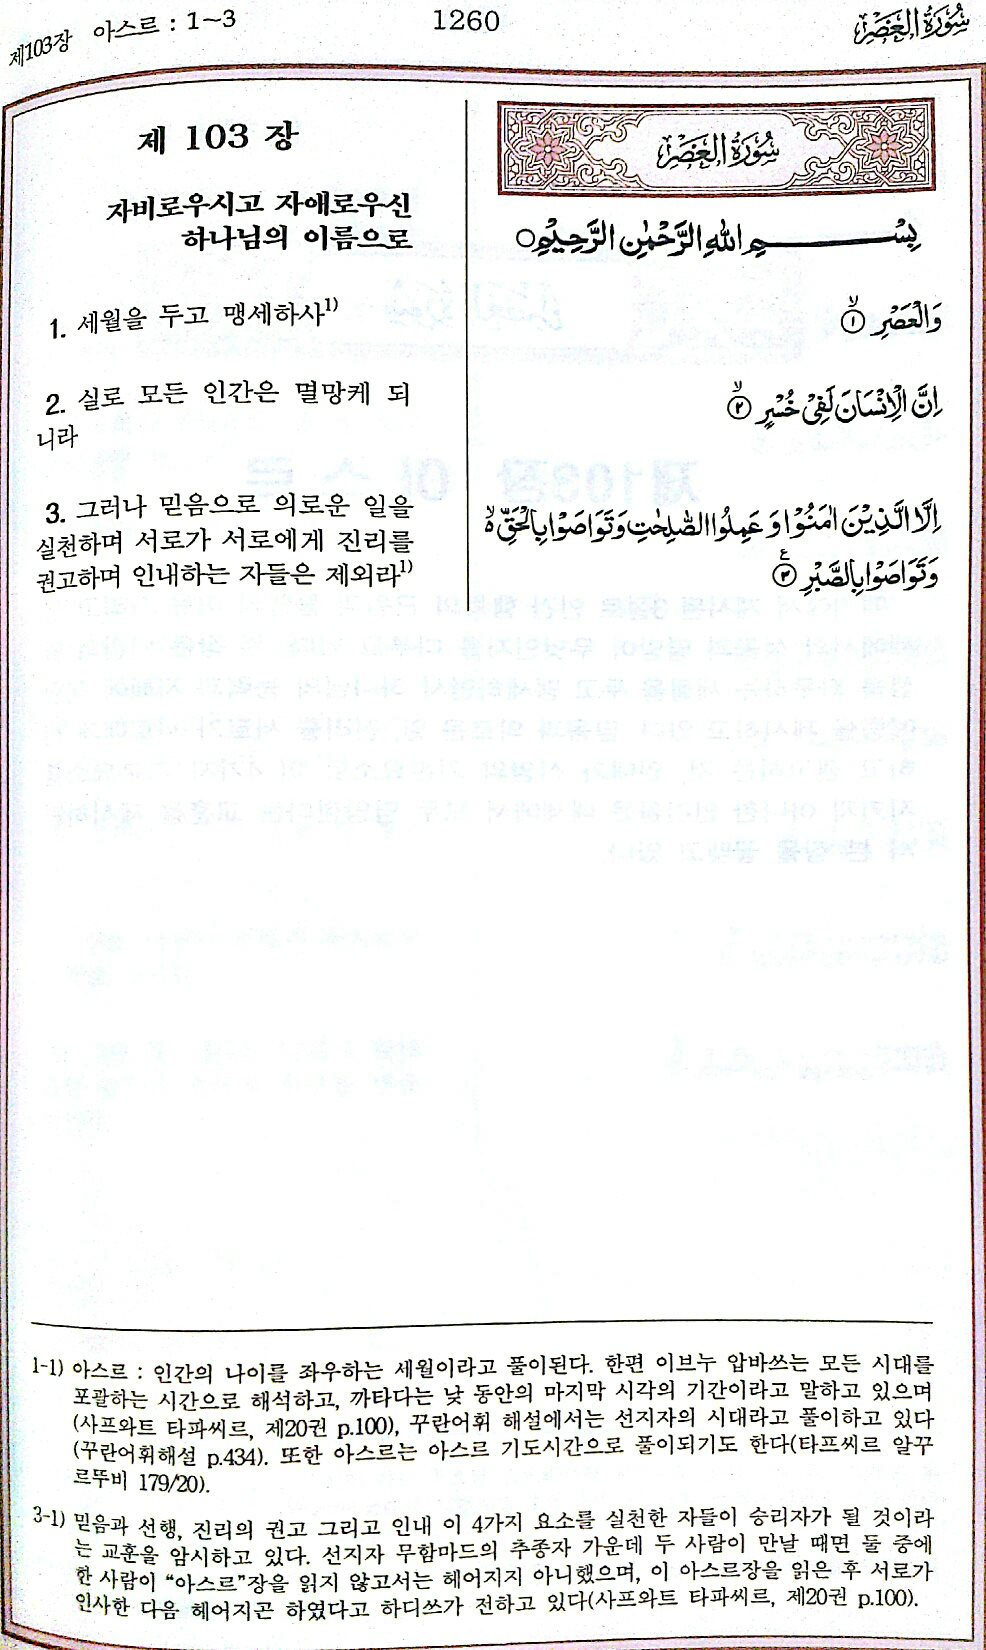 quran_korea_al-ashr